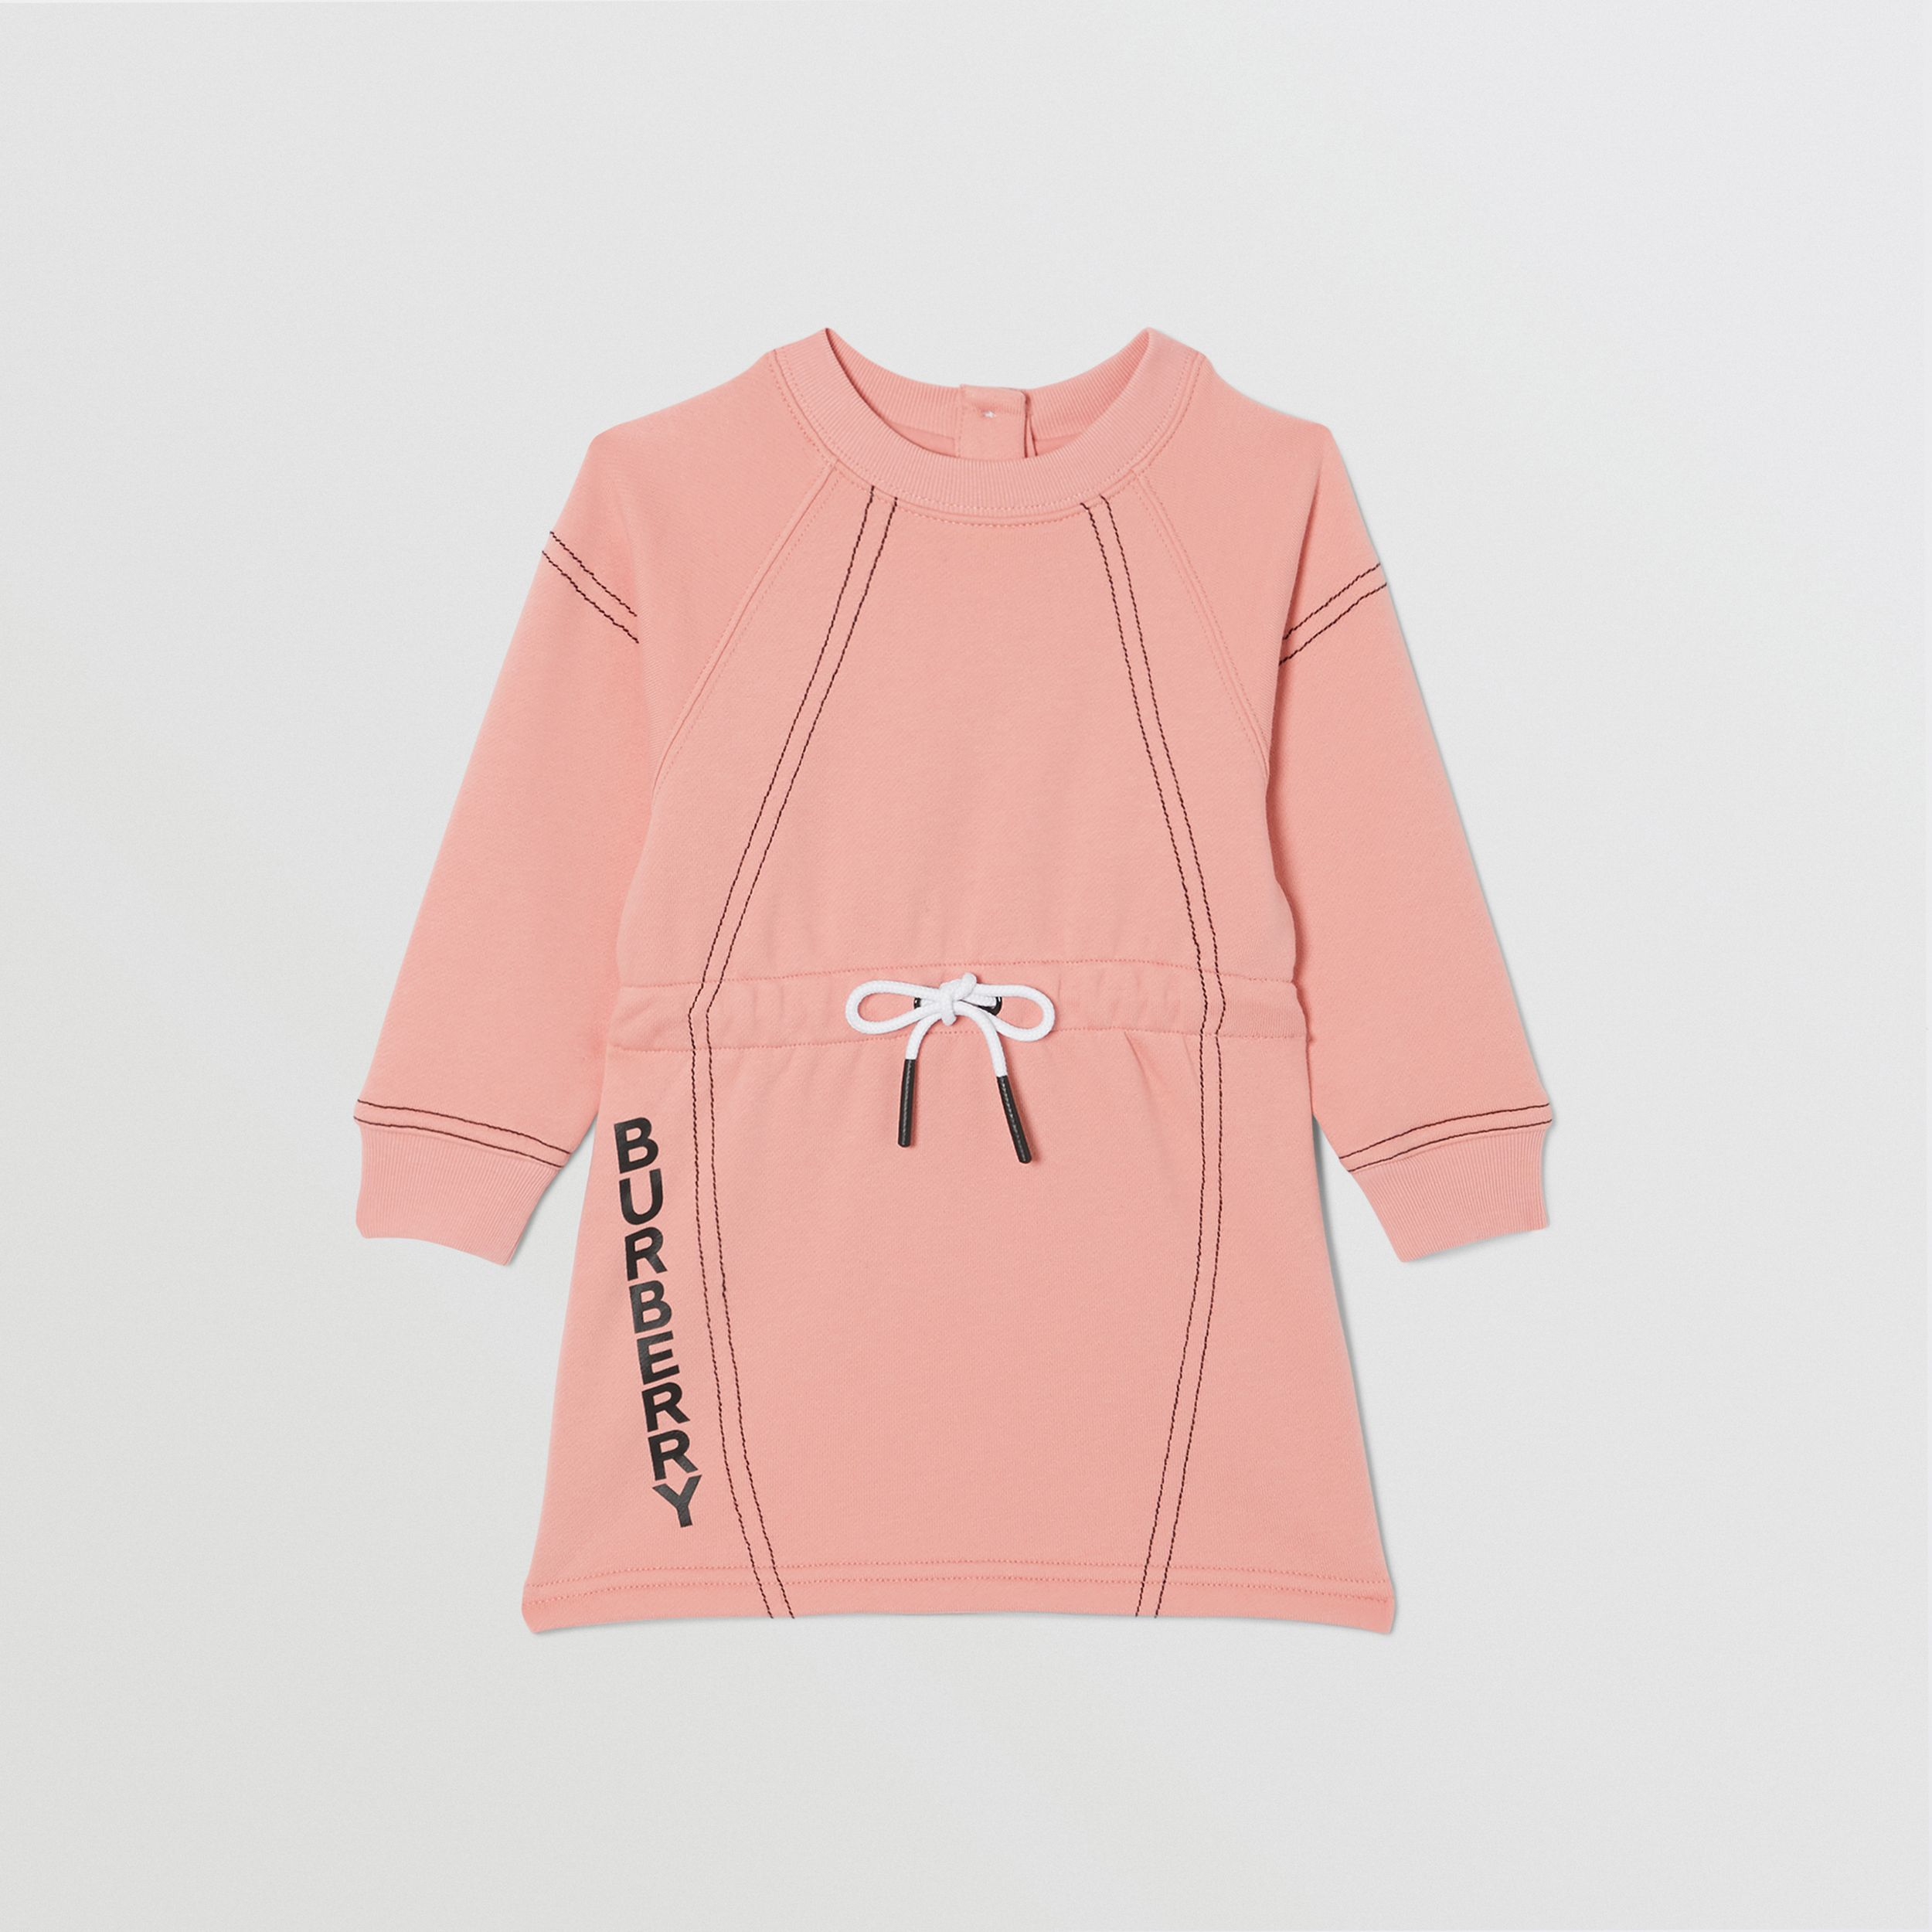 Logo Print Cotton Sweater Dress in Peach - Children | Burberry Canada - 1